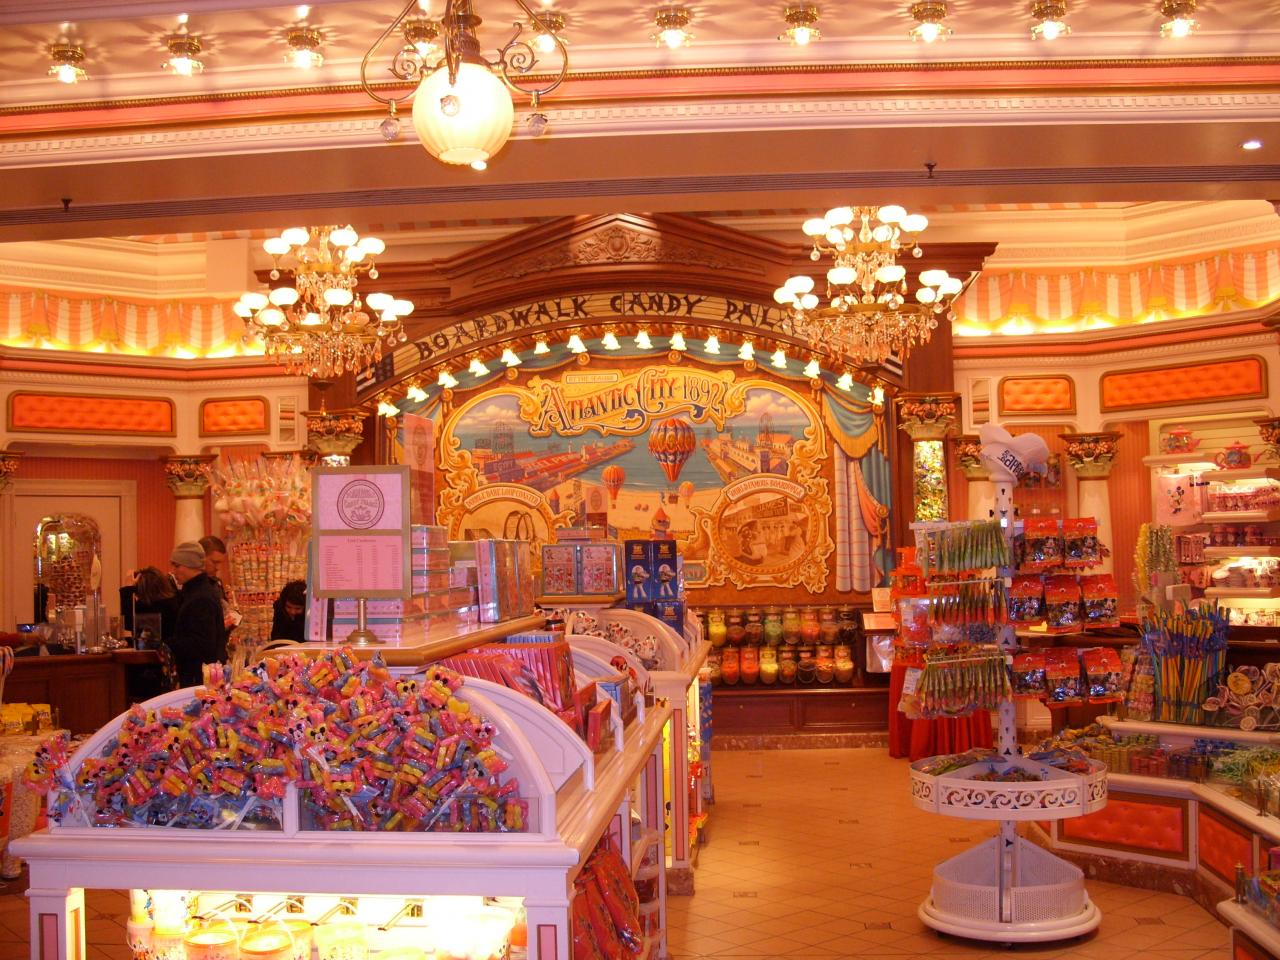 Boardwalk candy luxury hotel disneyland bets for Candy hotel